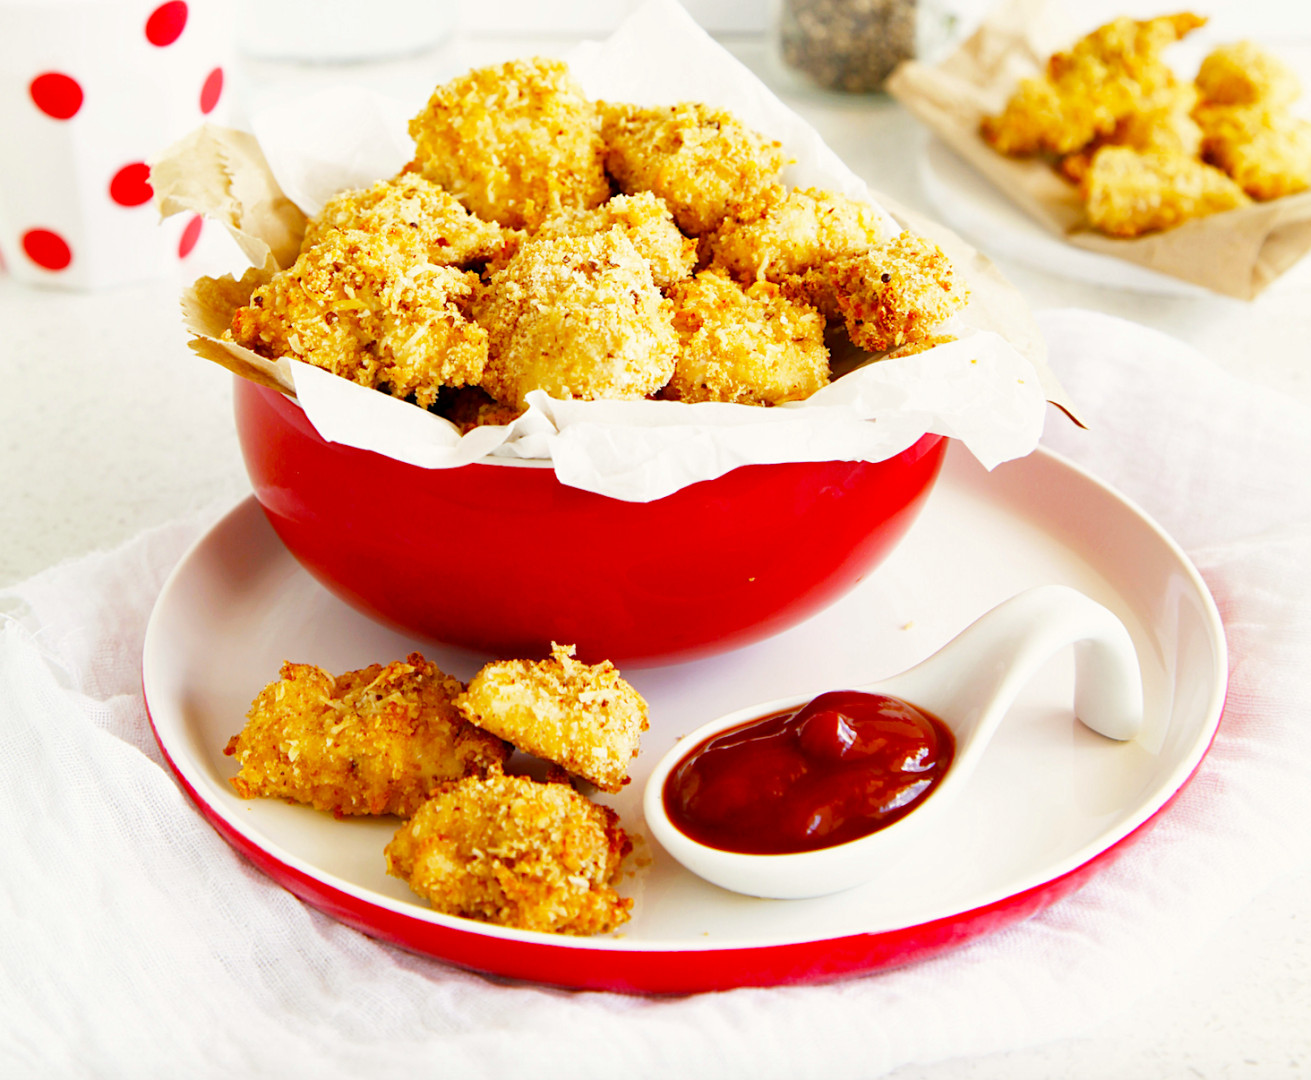 Healthy Chicken Recipes For Kids  Kids Healthy Chicken Nug s from Lose Baby Weight